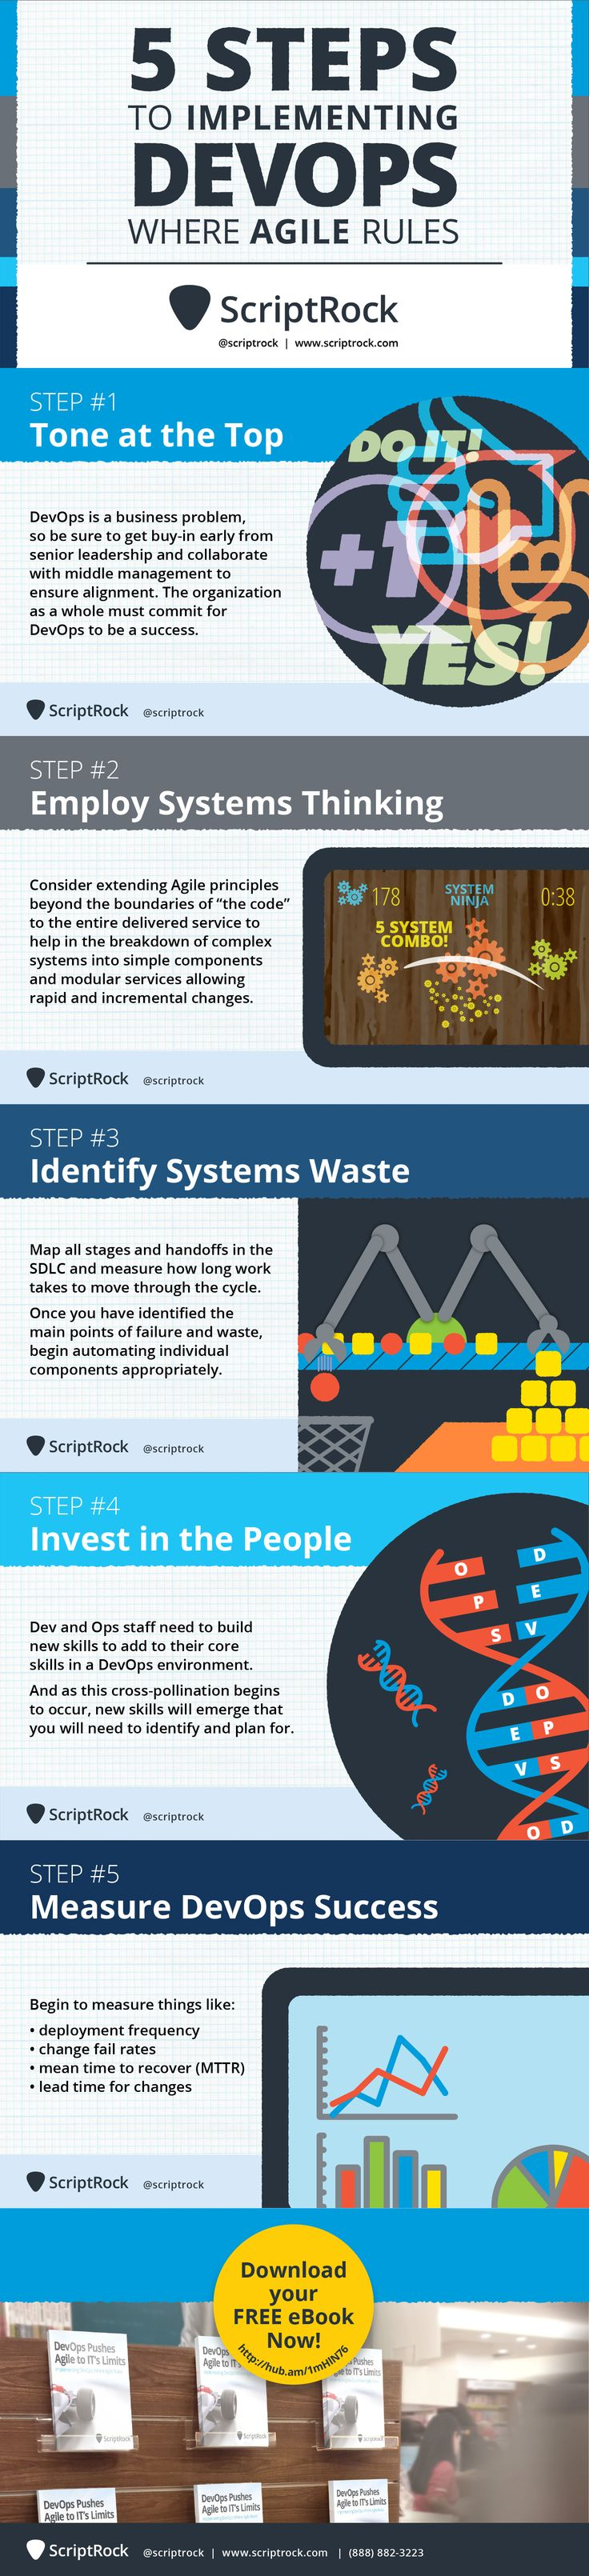 5 Steps to Implementing DevOps Where Agile Rules Infographic - ScriptRock